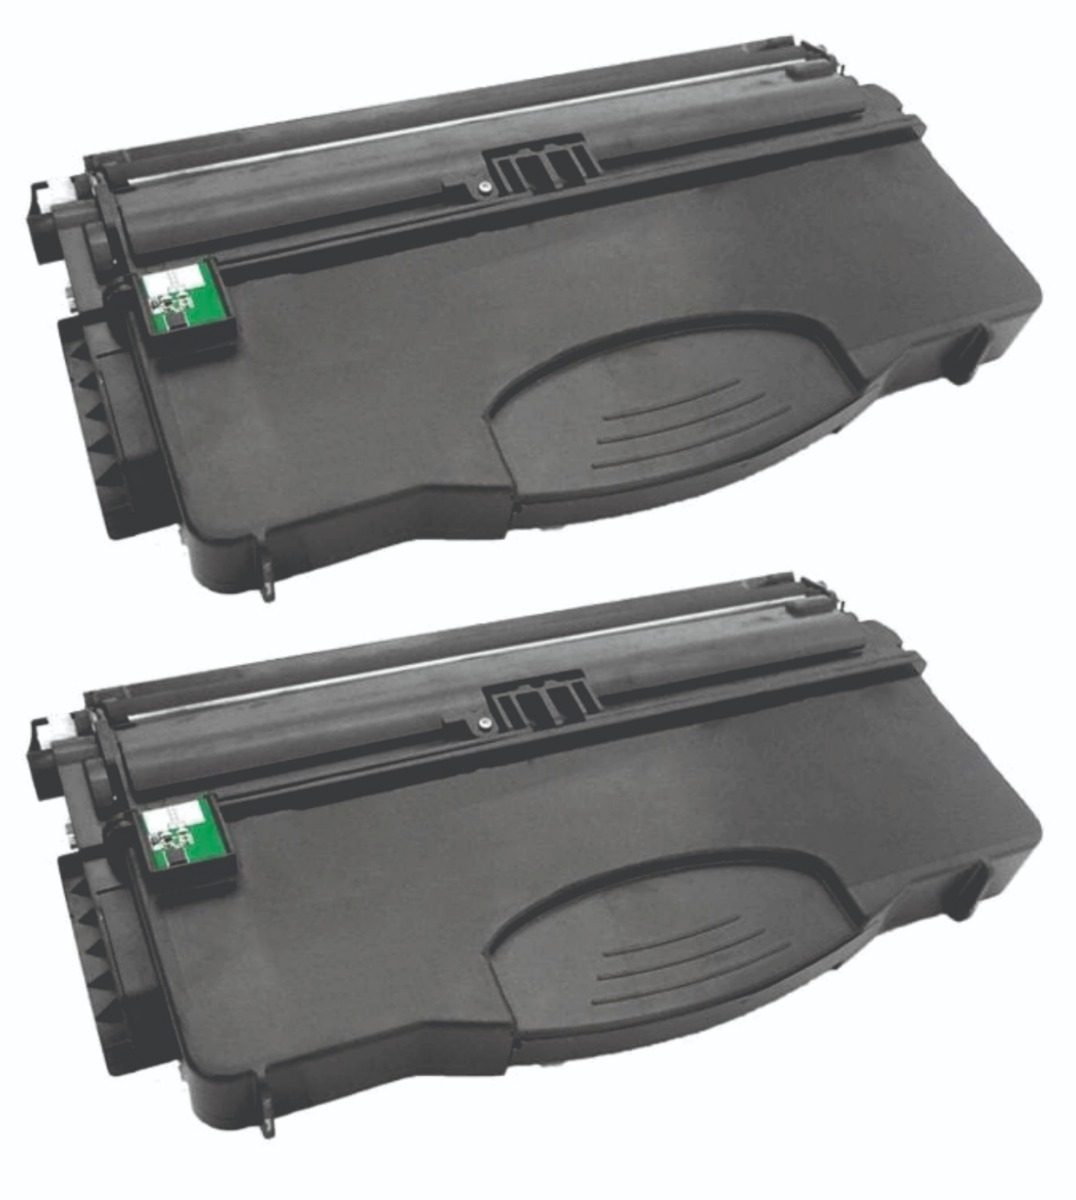 E120 LEXMARK WINDOWS DRIVER